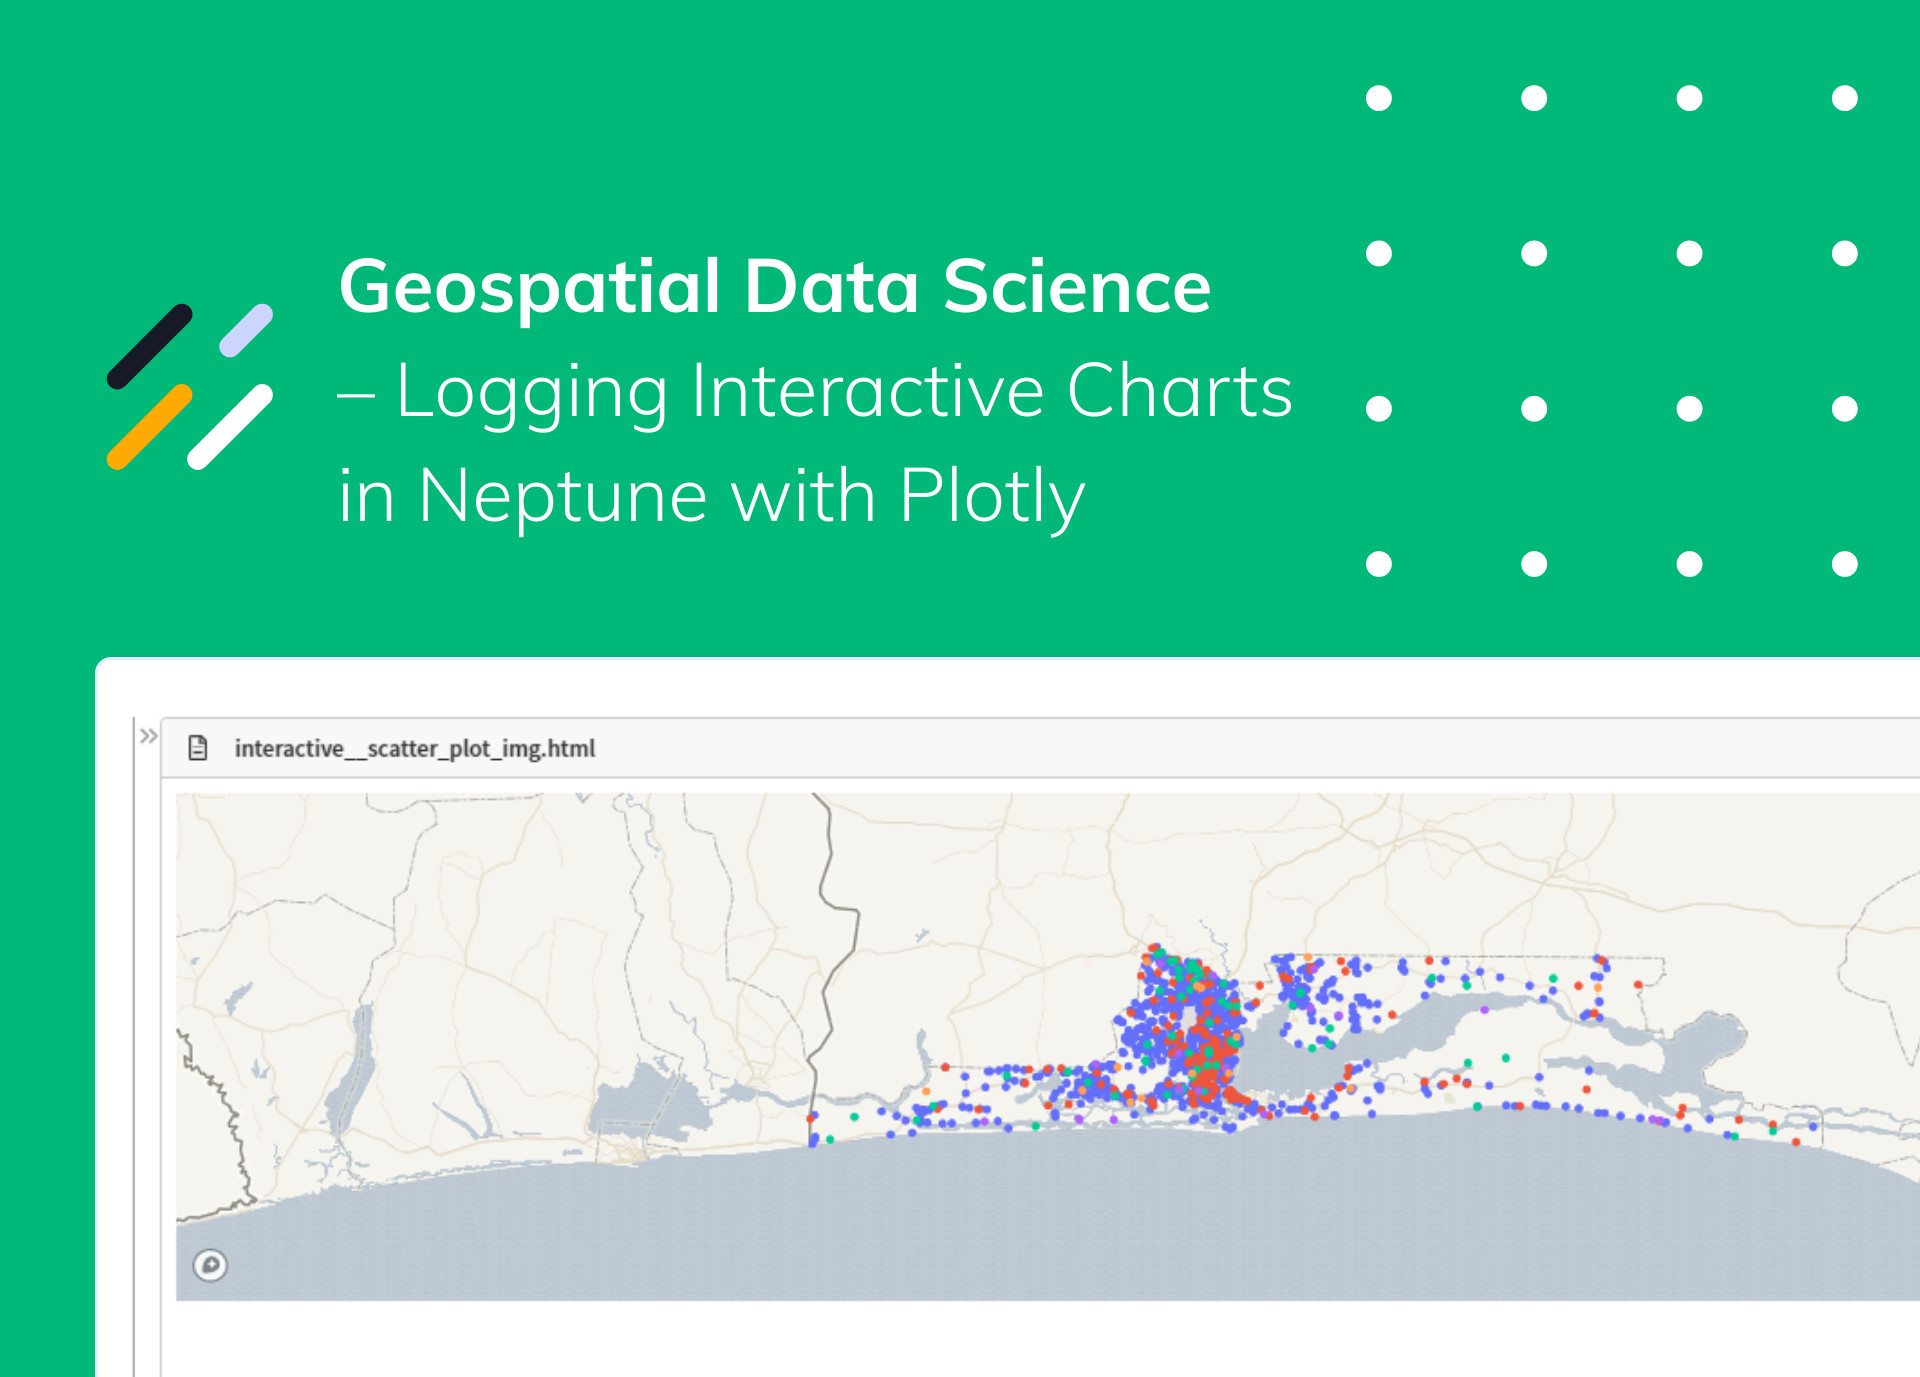 Geospatial Data Science – Logging Interactive Charts in Neptune with Plotly [Guide]